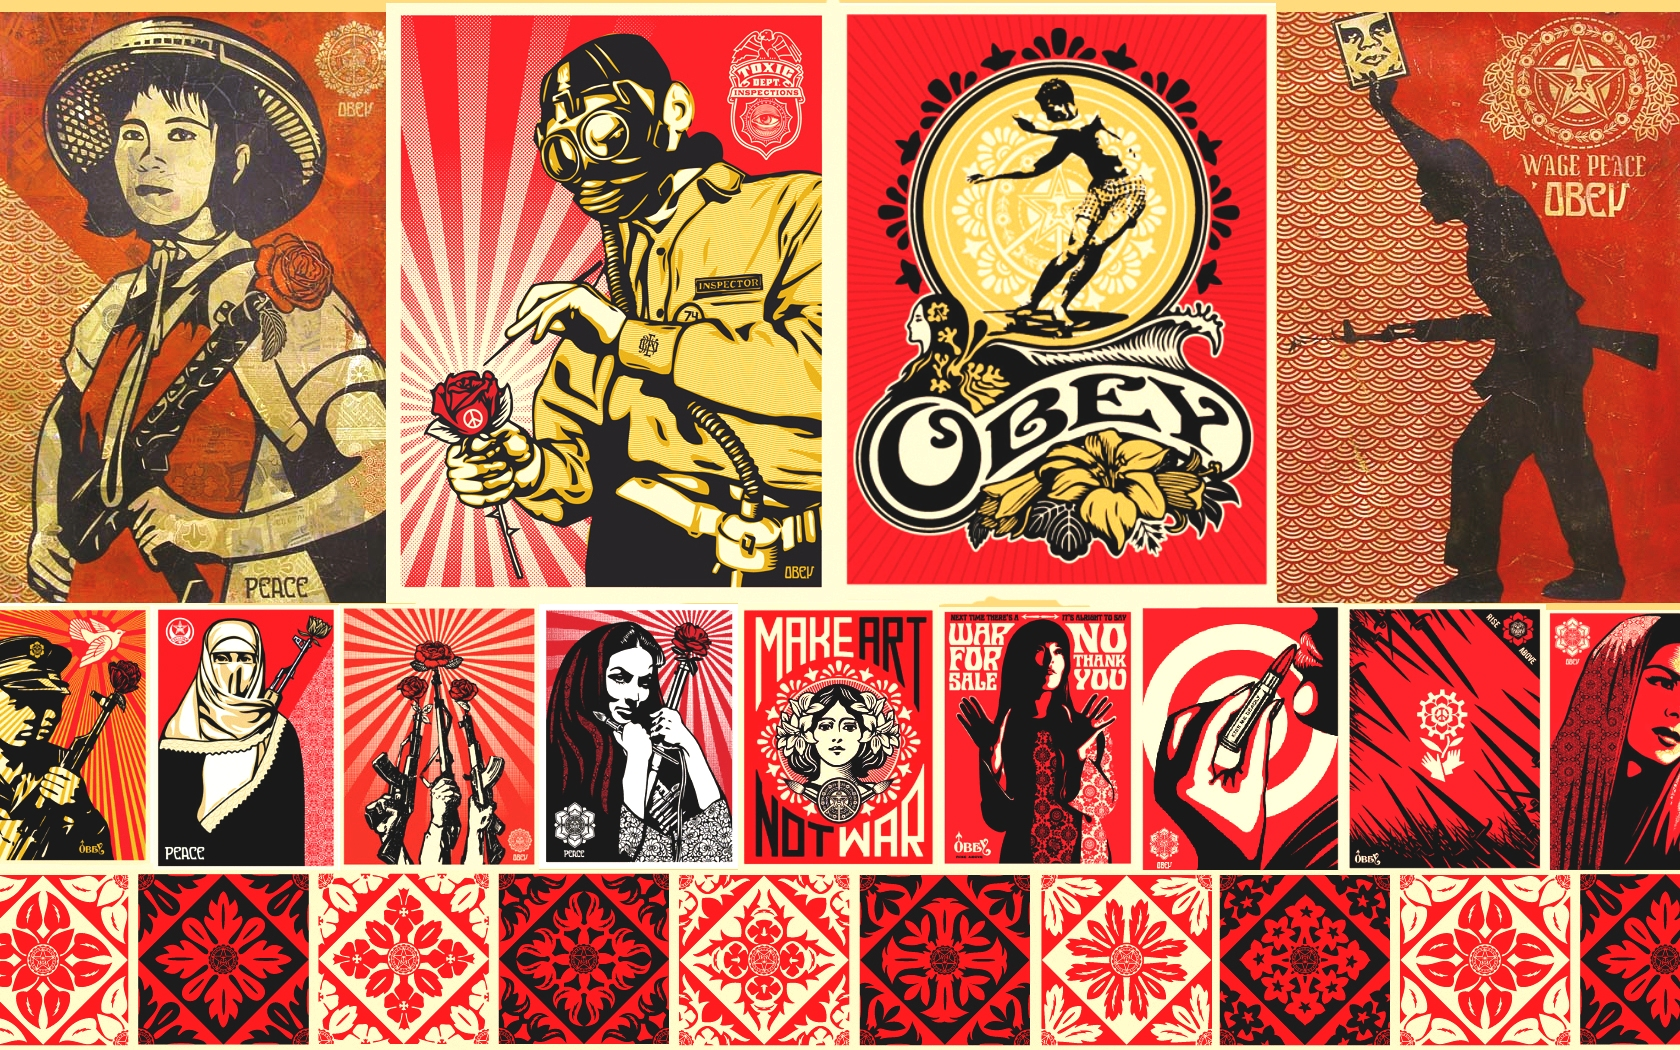 Obey Giant 1680x1050